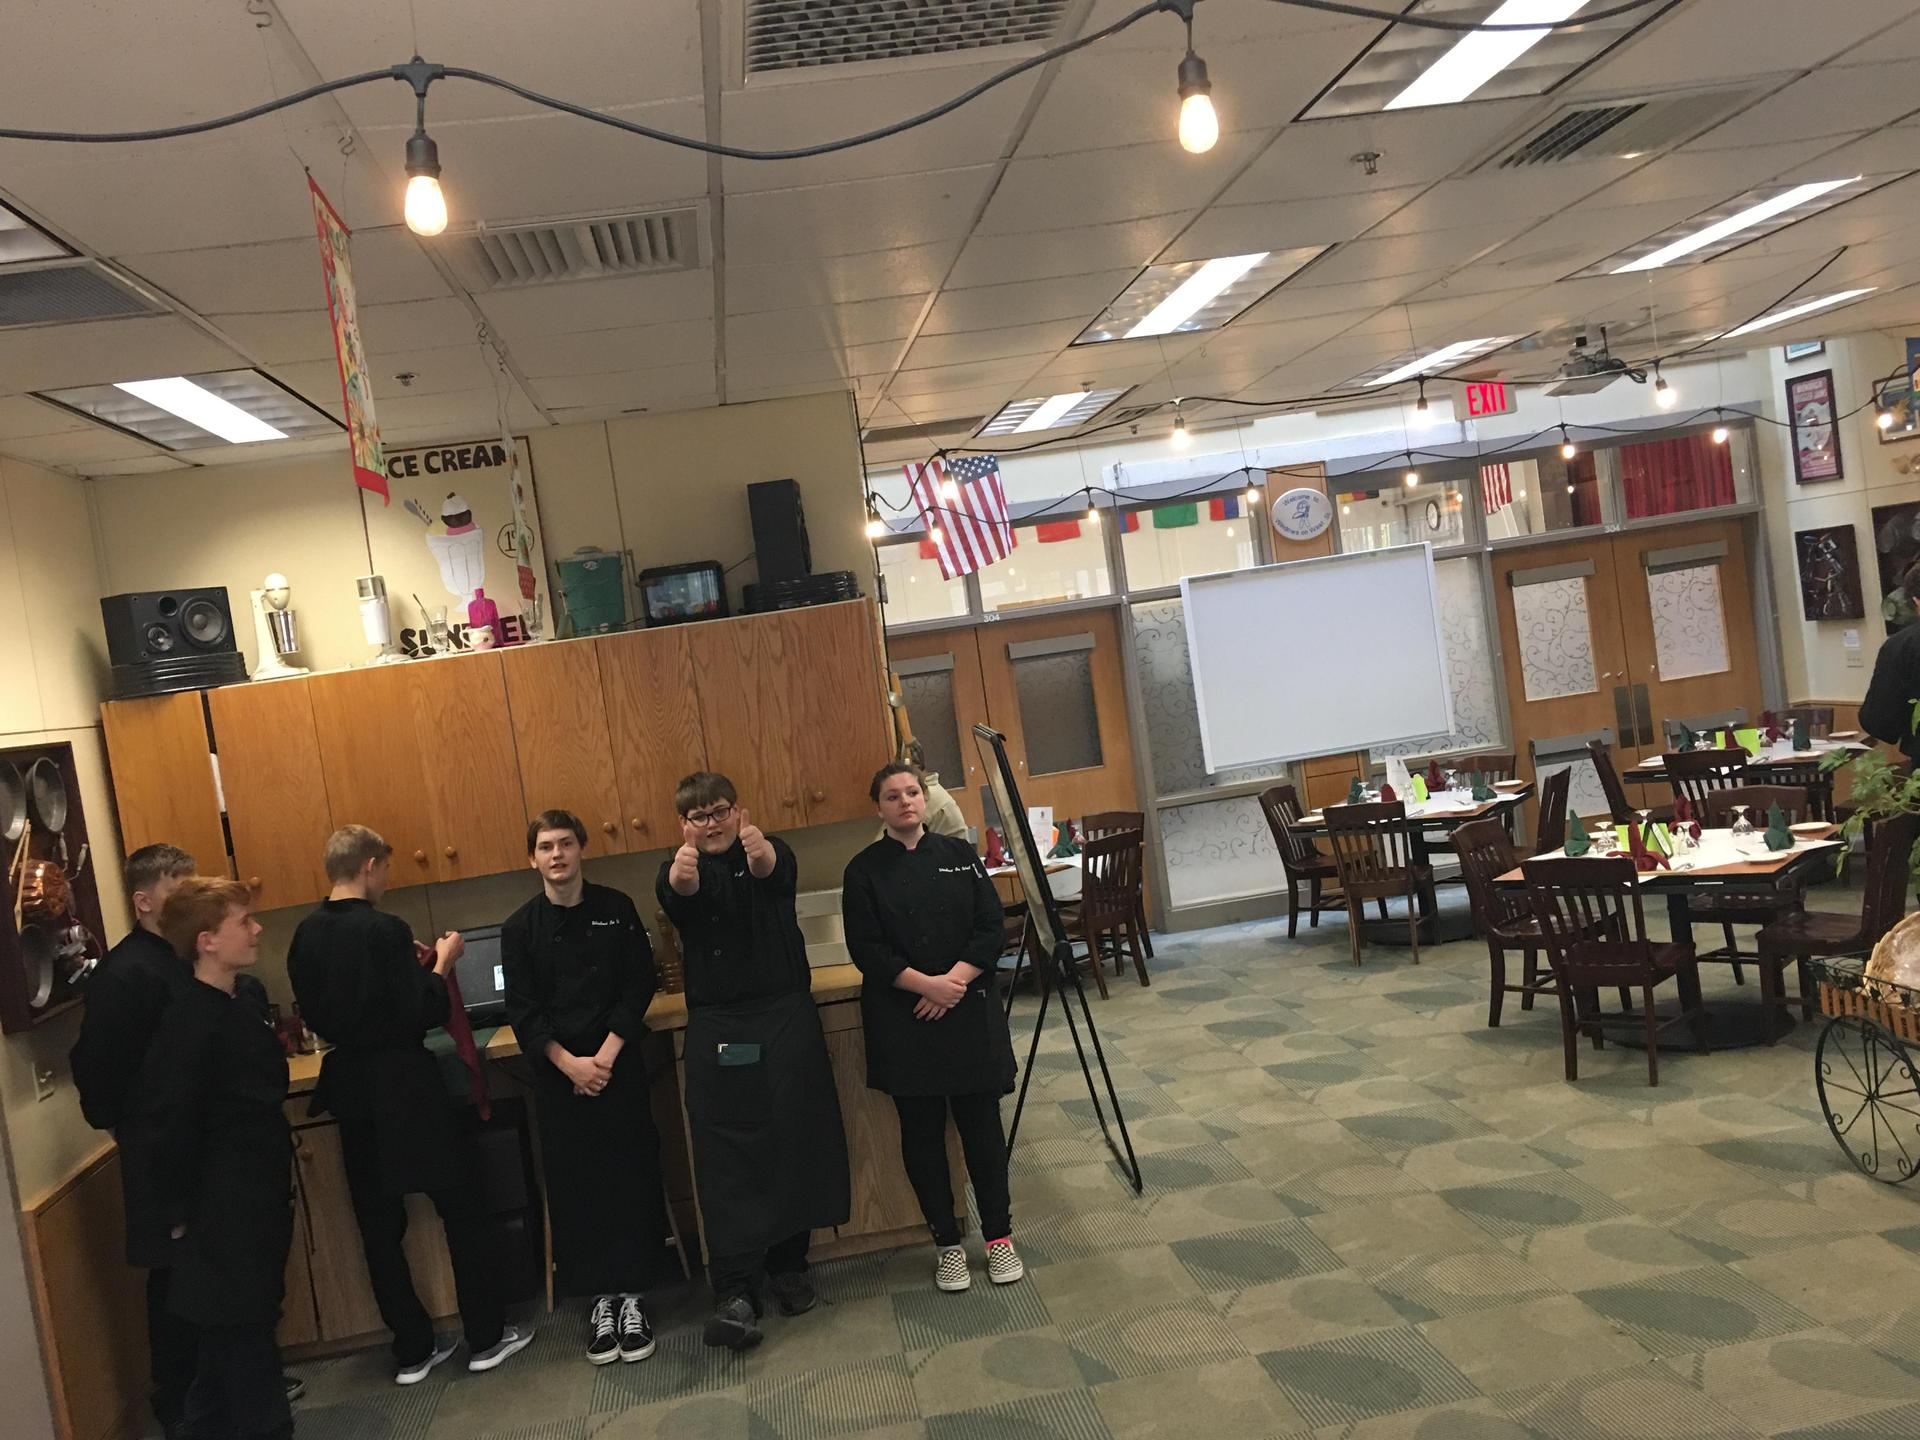 Restaurant staff lined up for duty